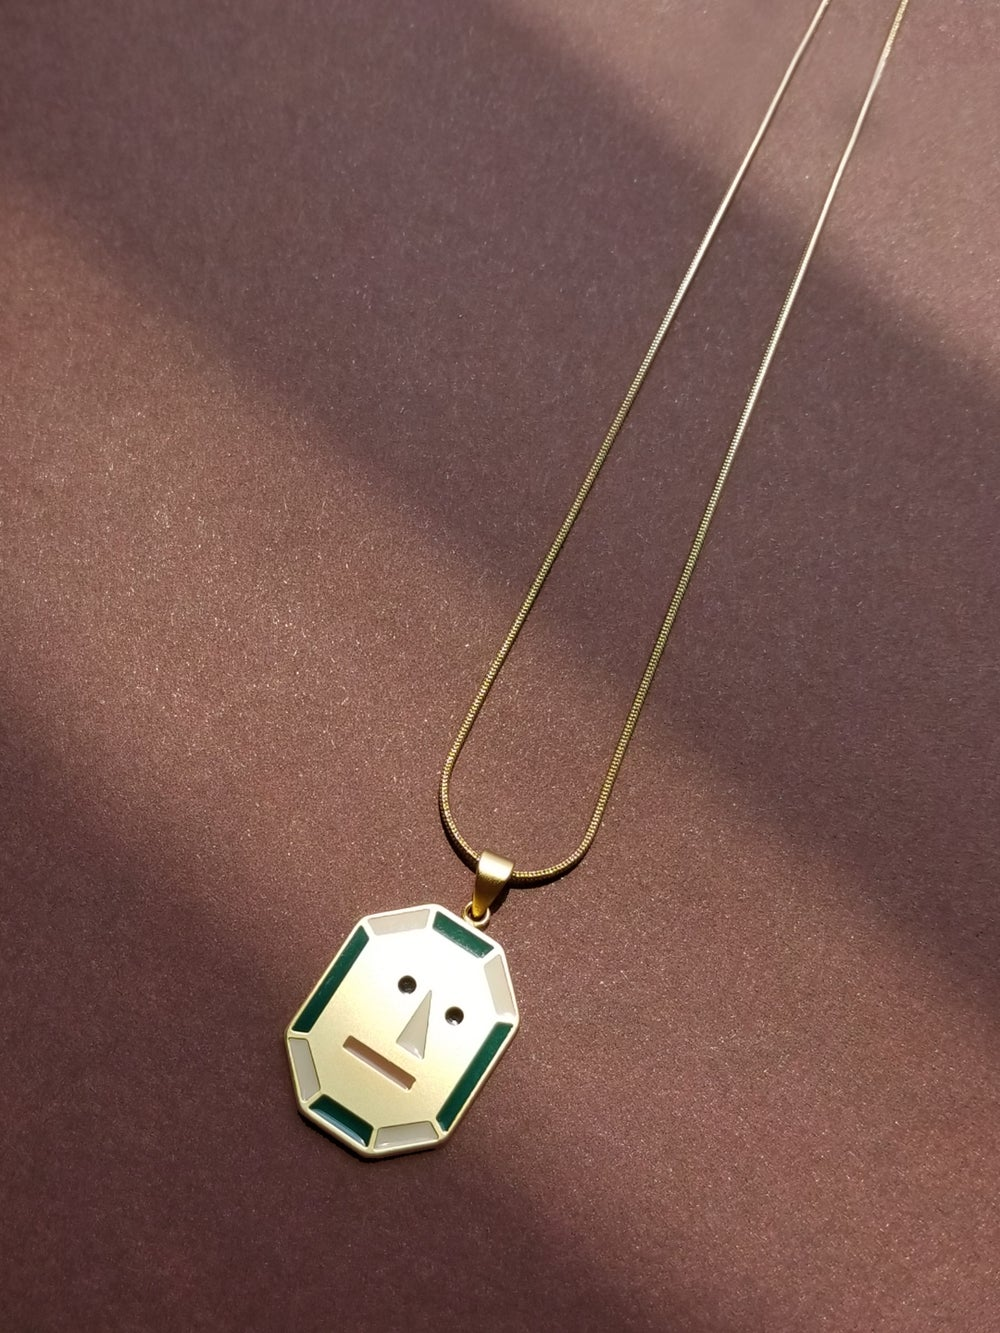 JOY + PEACE - reversible necklace- Green + Pink • Stainless steel